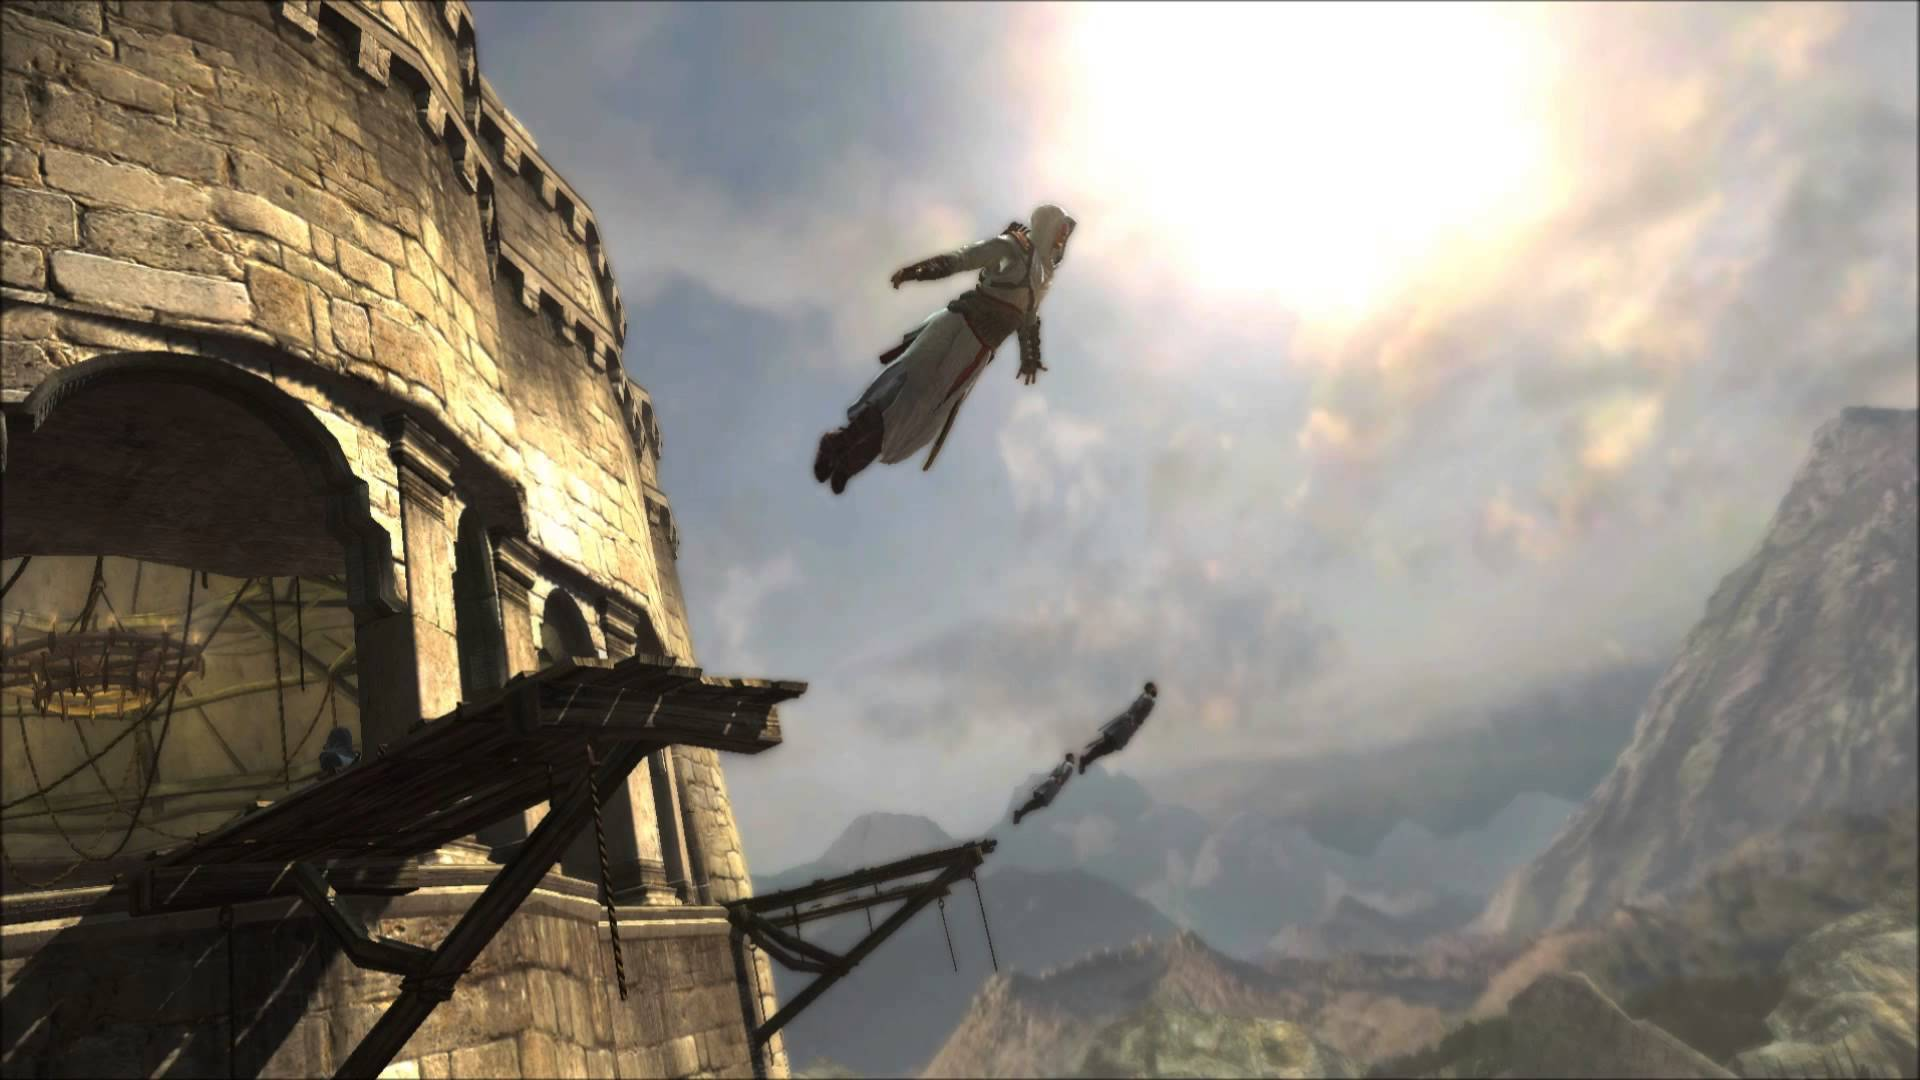 The stuntman will recreate the famous jump from the long-running videogame